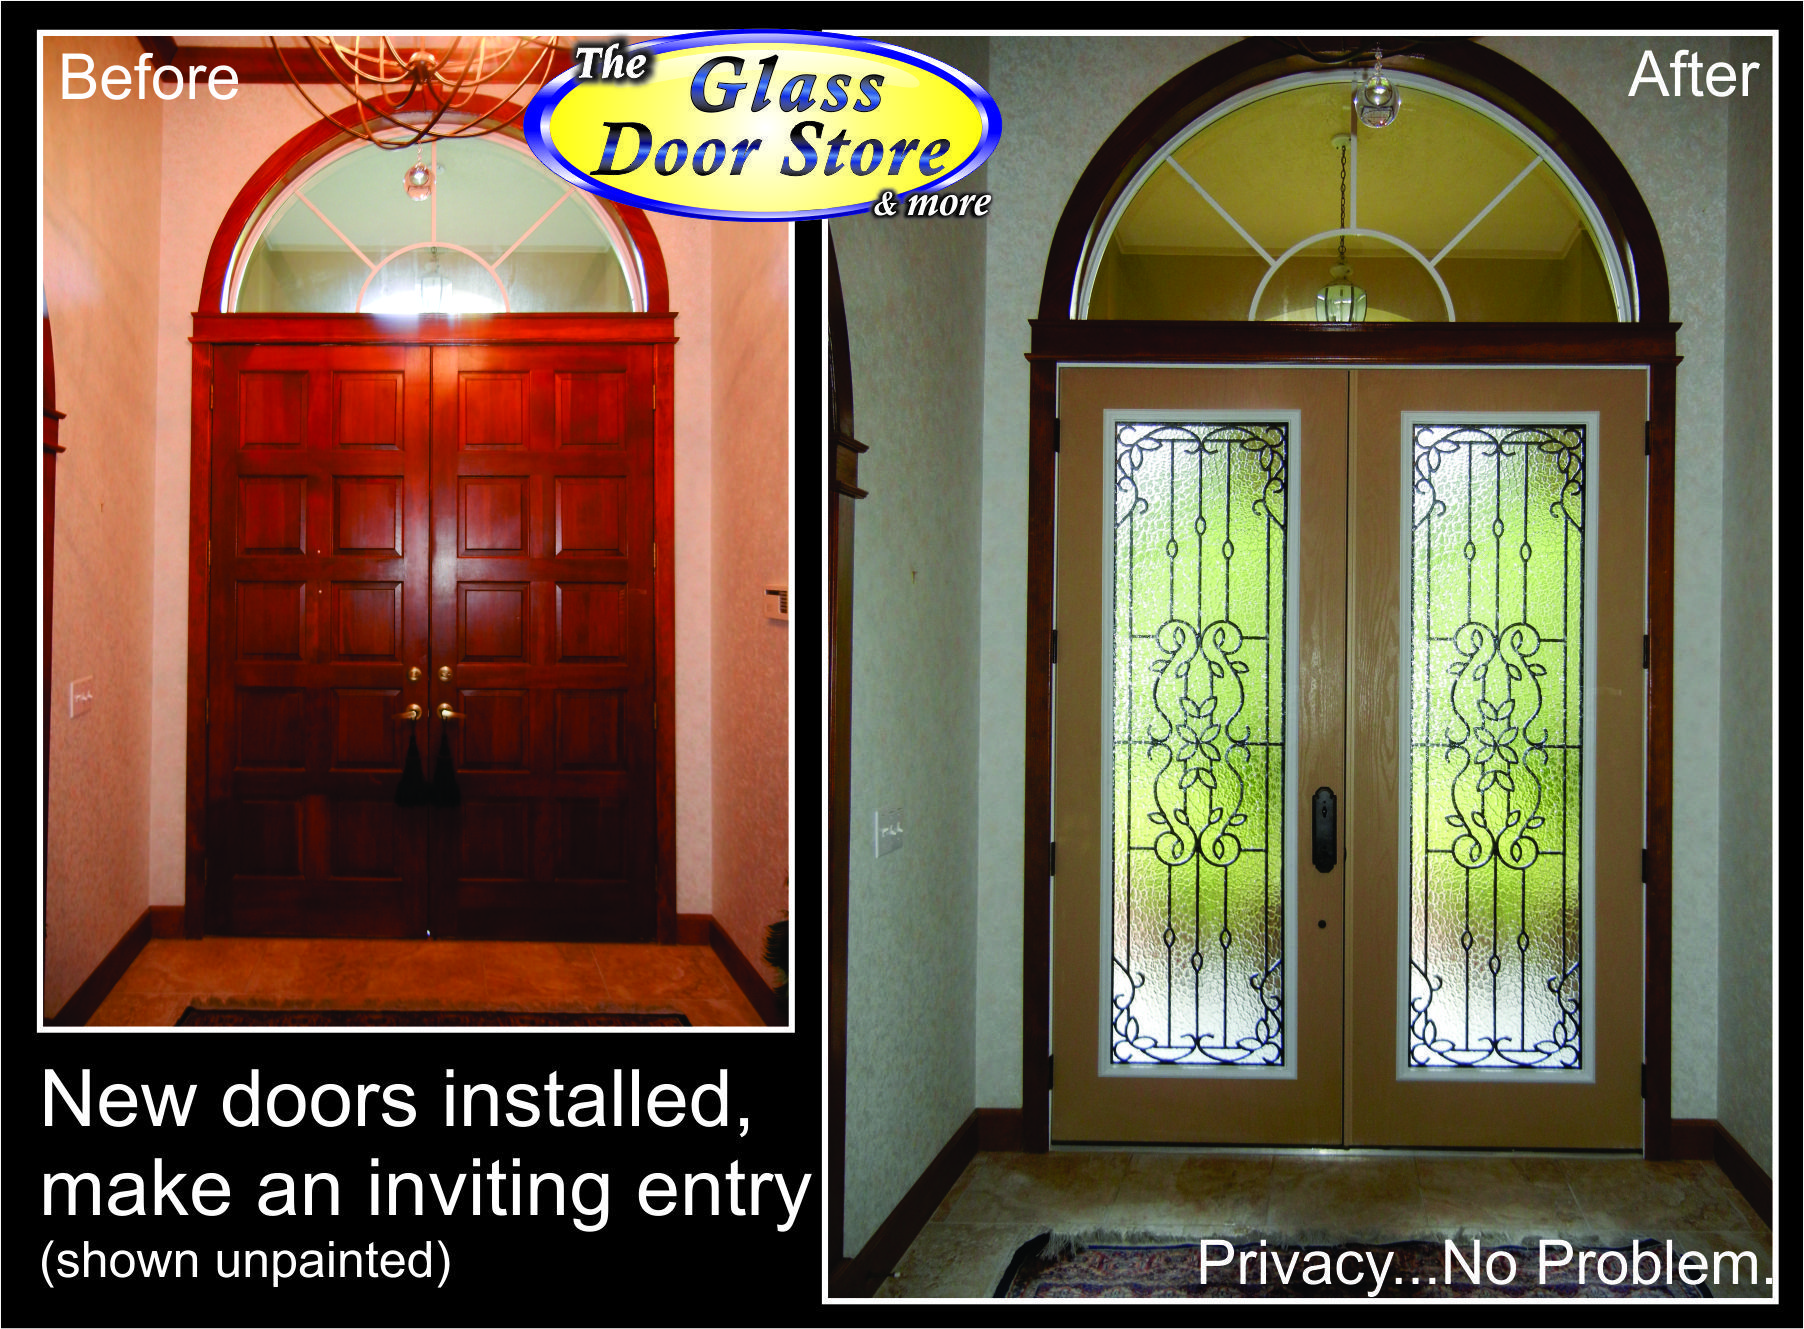 Wrought Iron Glass Inserts In Fiberglass Doors Here Are Replacing Old Wood Theglassdoor Com